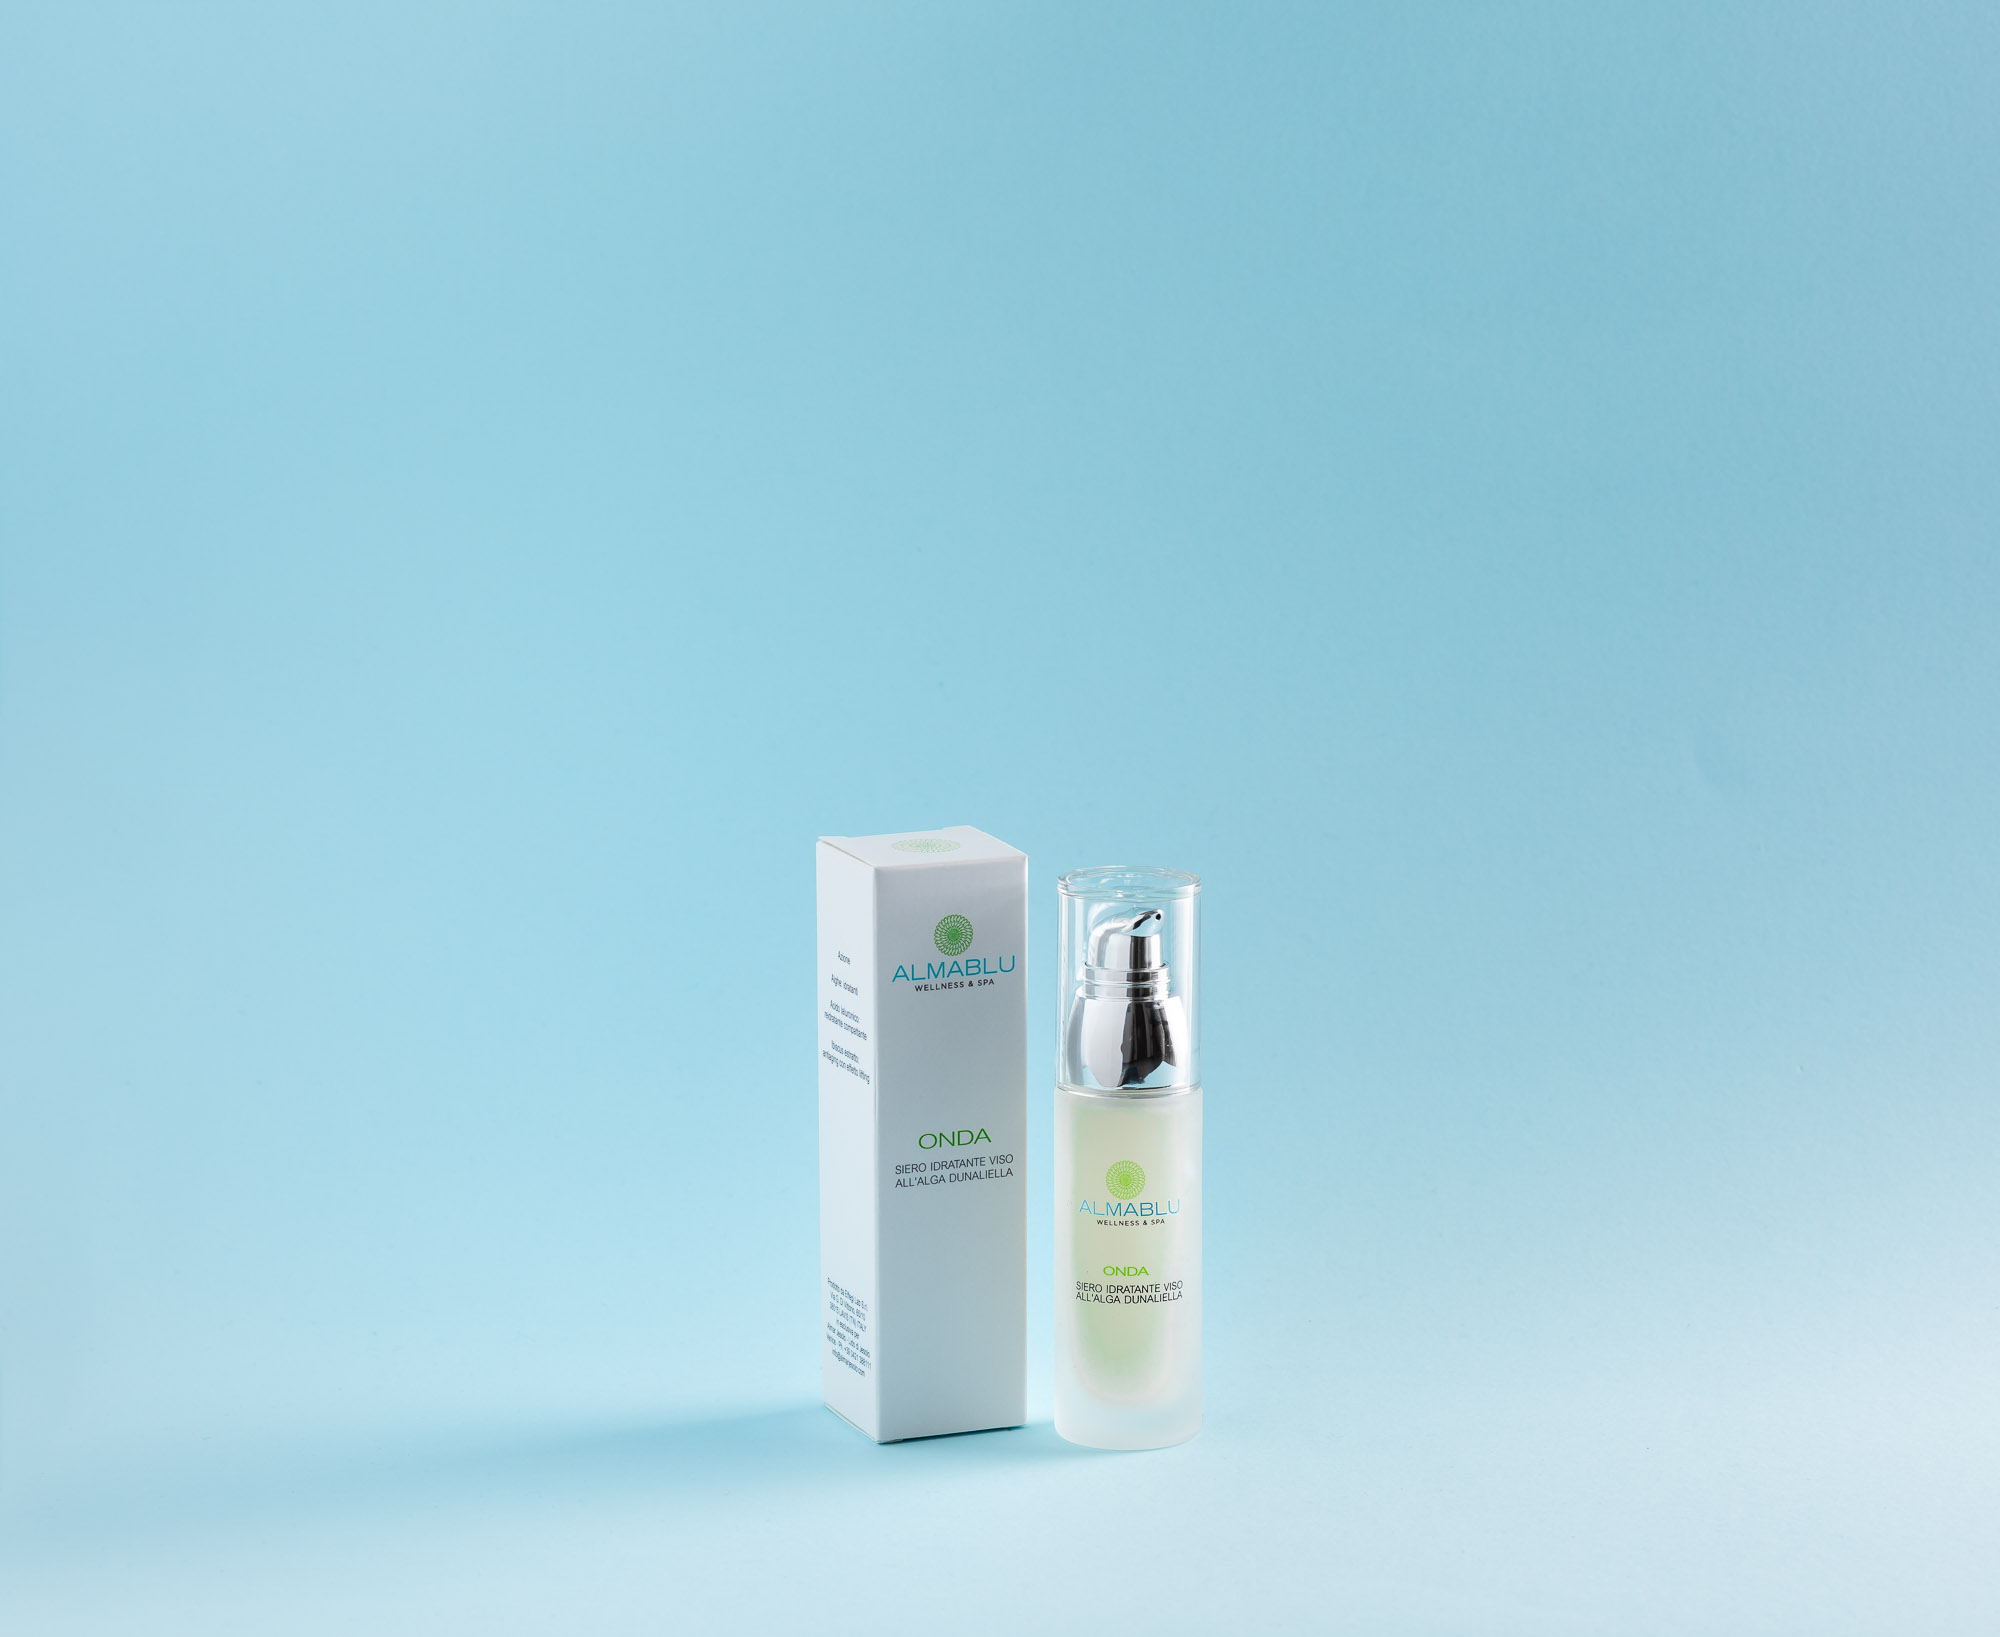 Almablu Onda: an effective lifting serum with a strong moisturizing and regenerating action